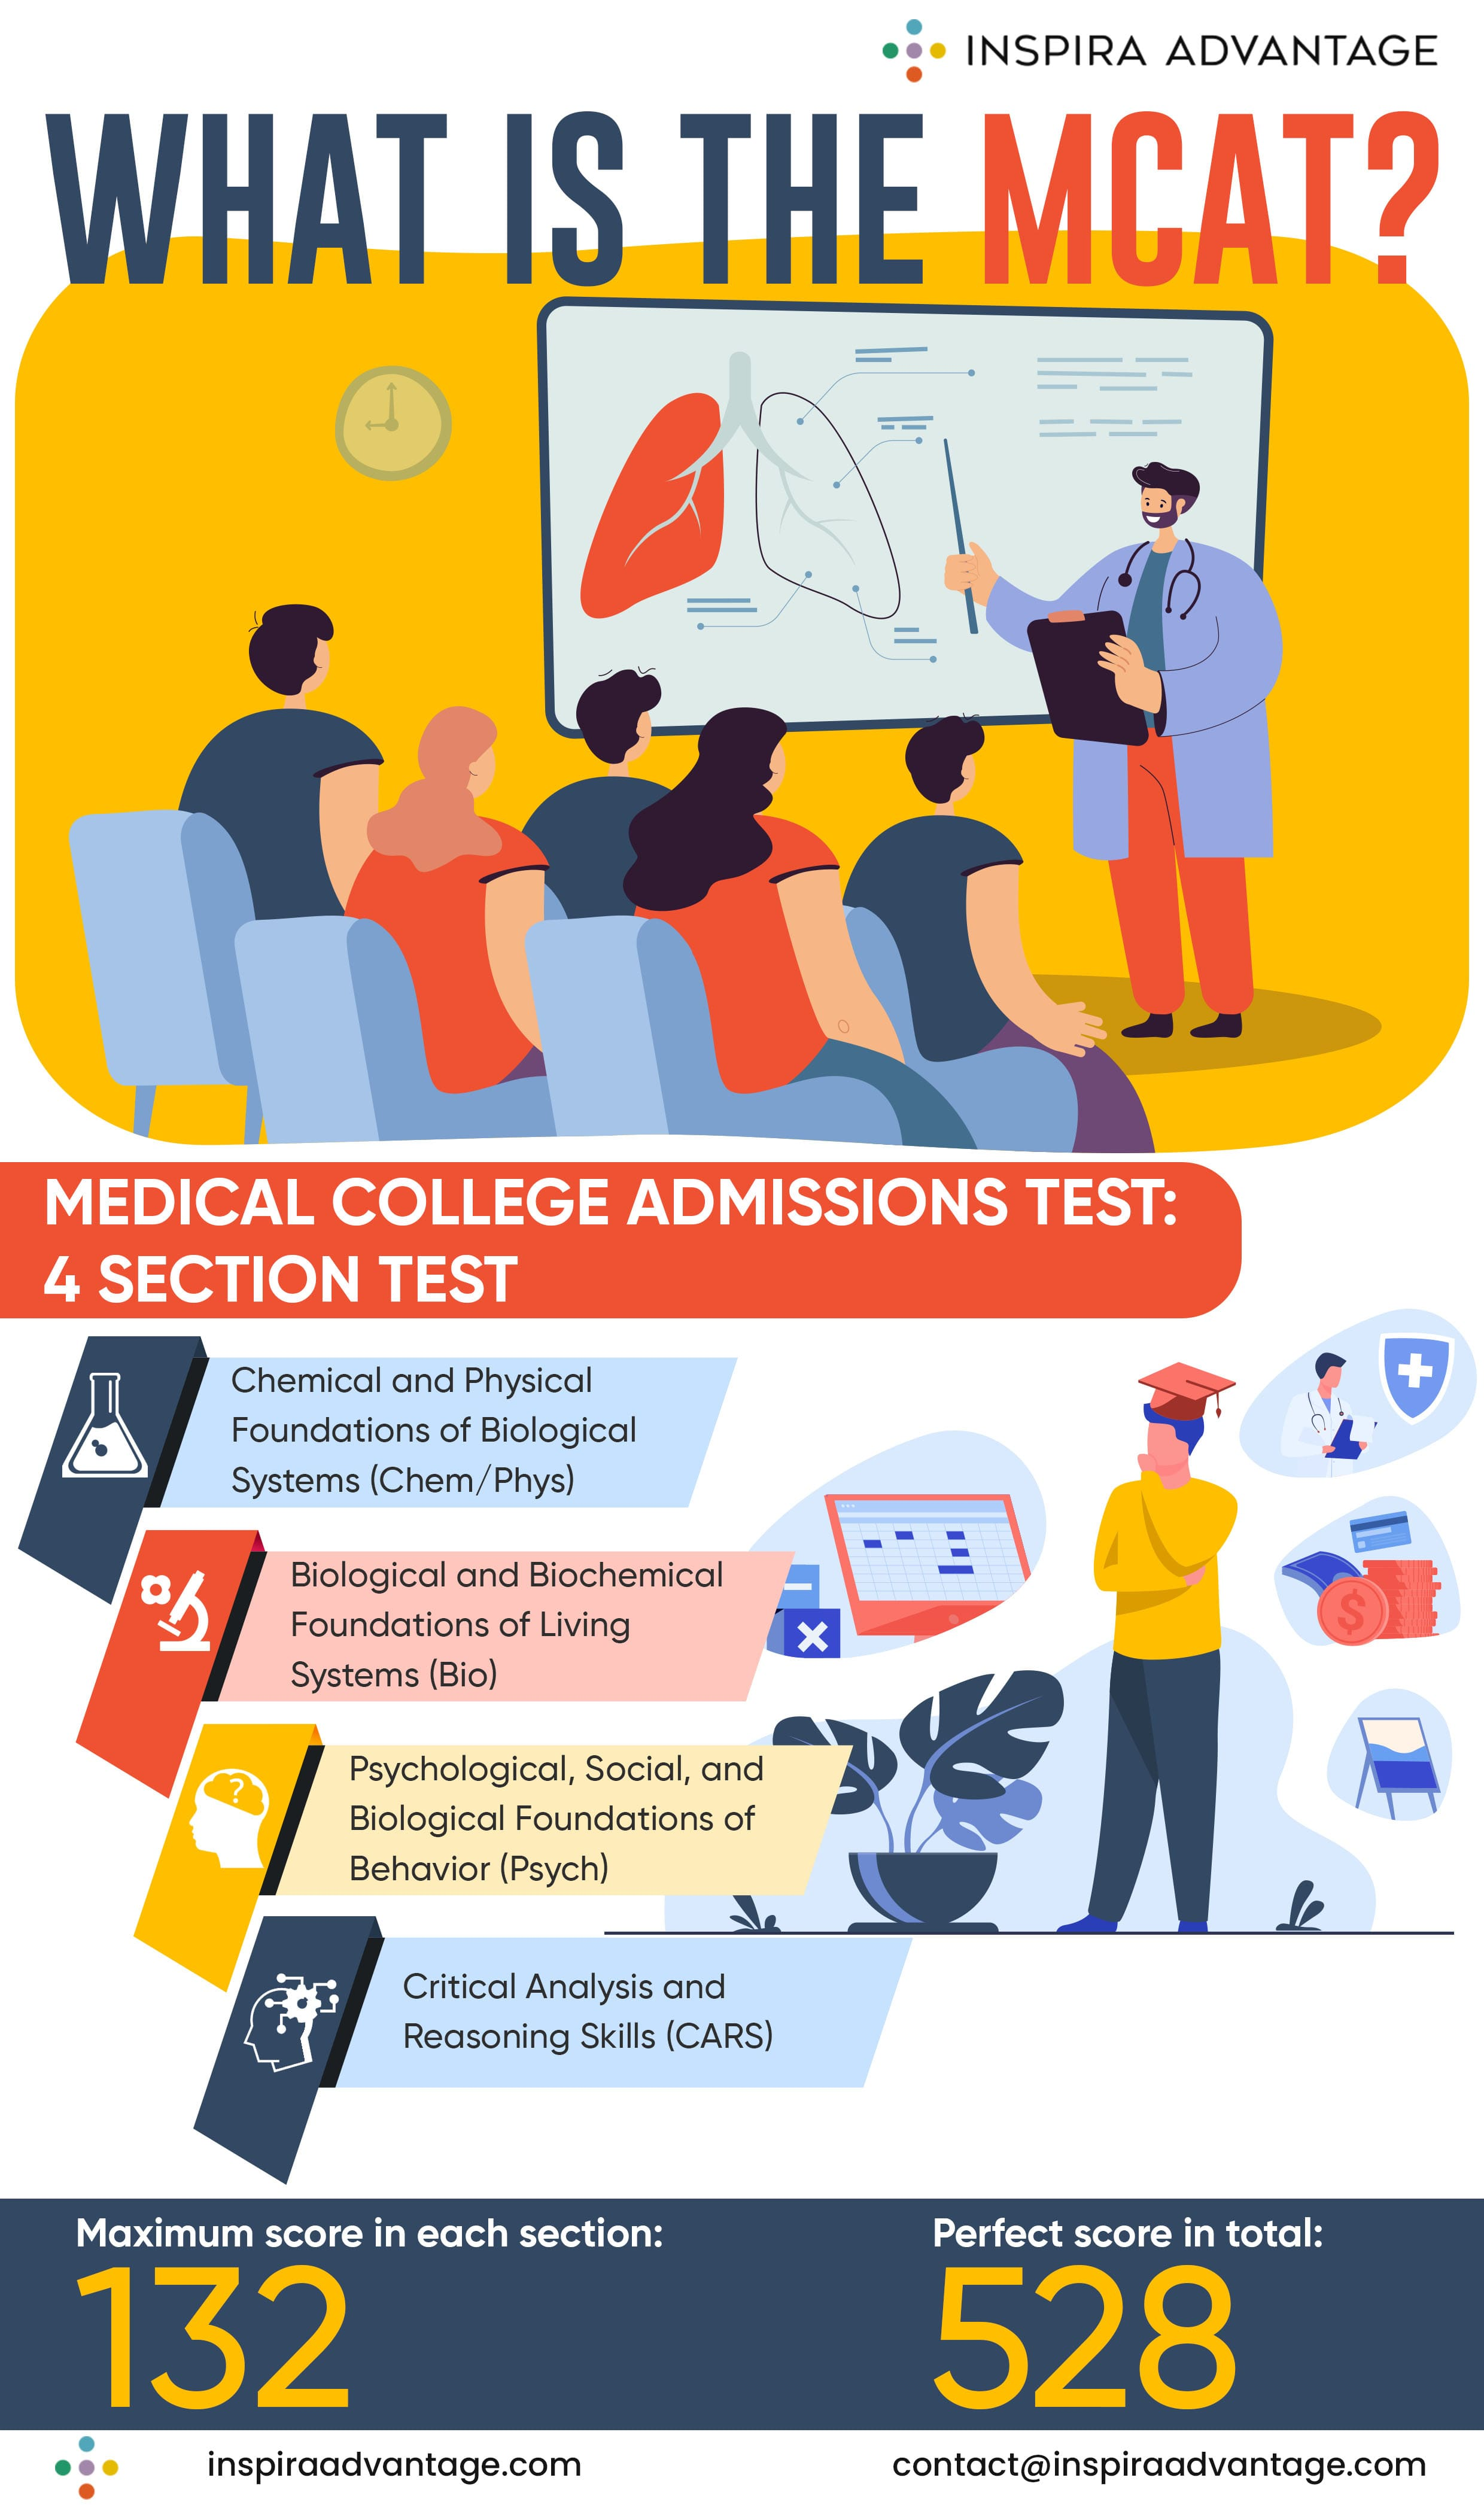 Visual guide to what the MCAT is